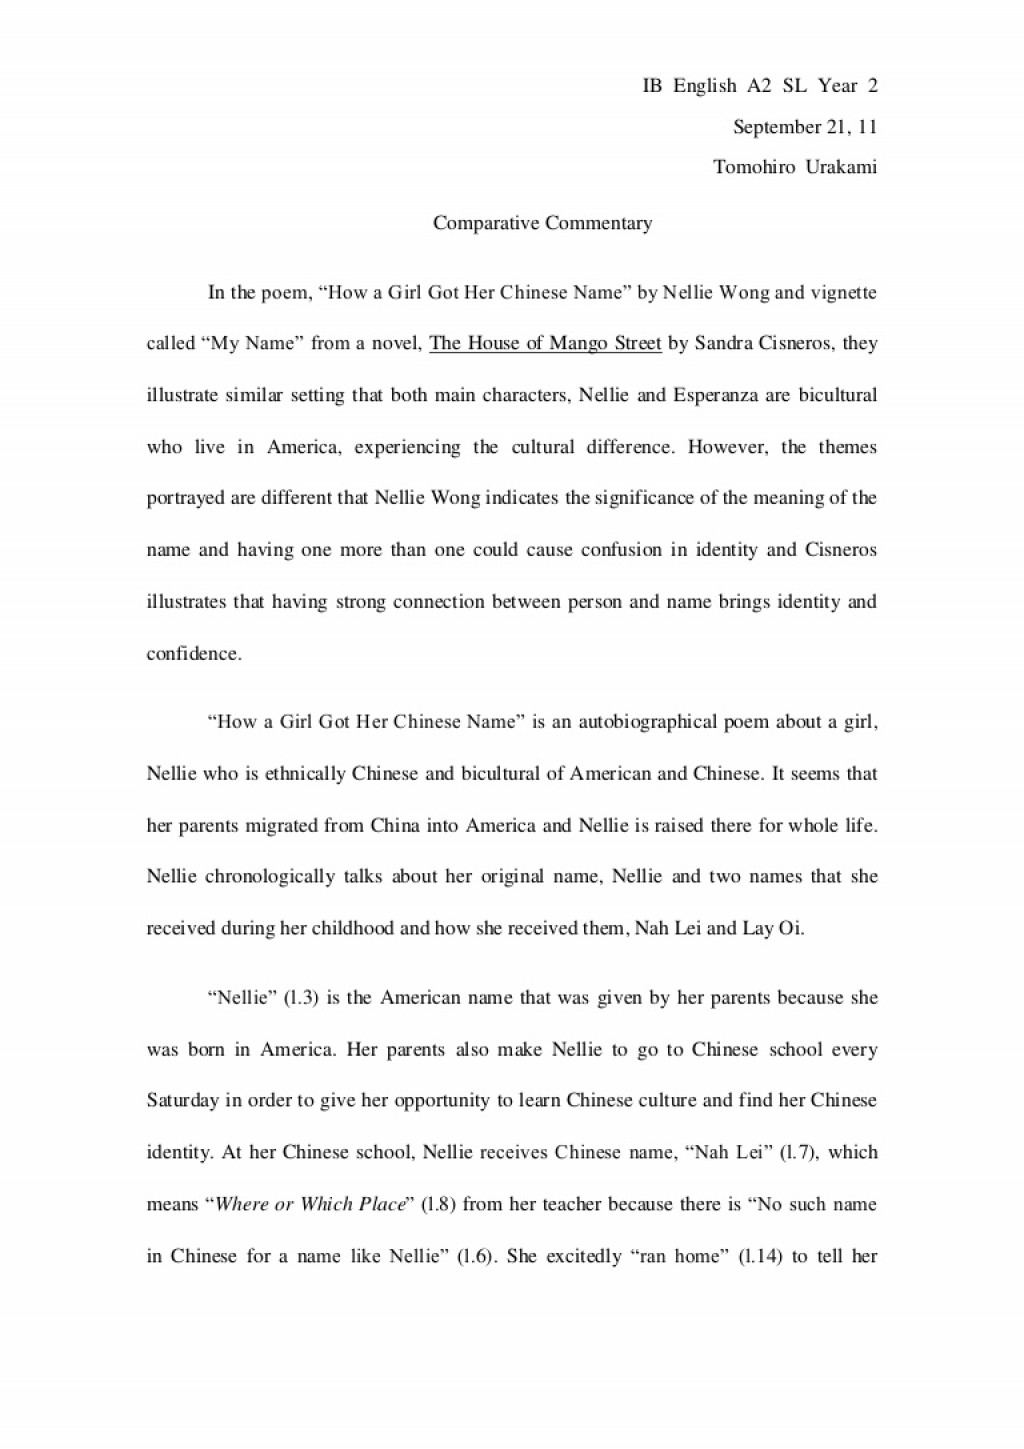 003 Comparativeessaydraft Phpapp02 Thumbnail Essay Example Comparative Sensational Essays Sample Of On Poems Vce The Crucible And Year Wonders Large